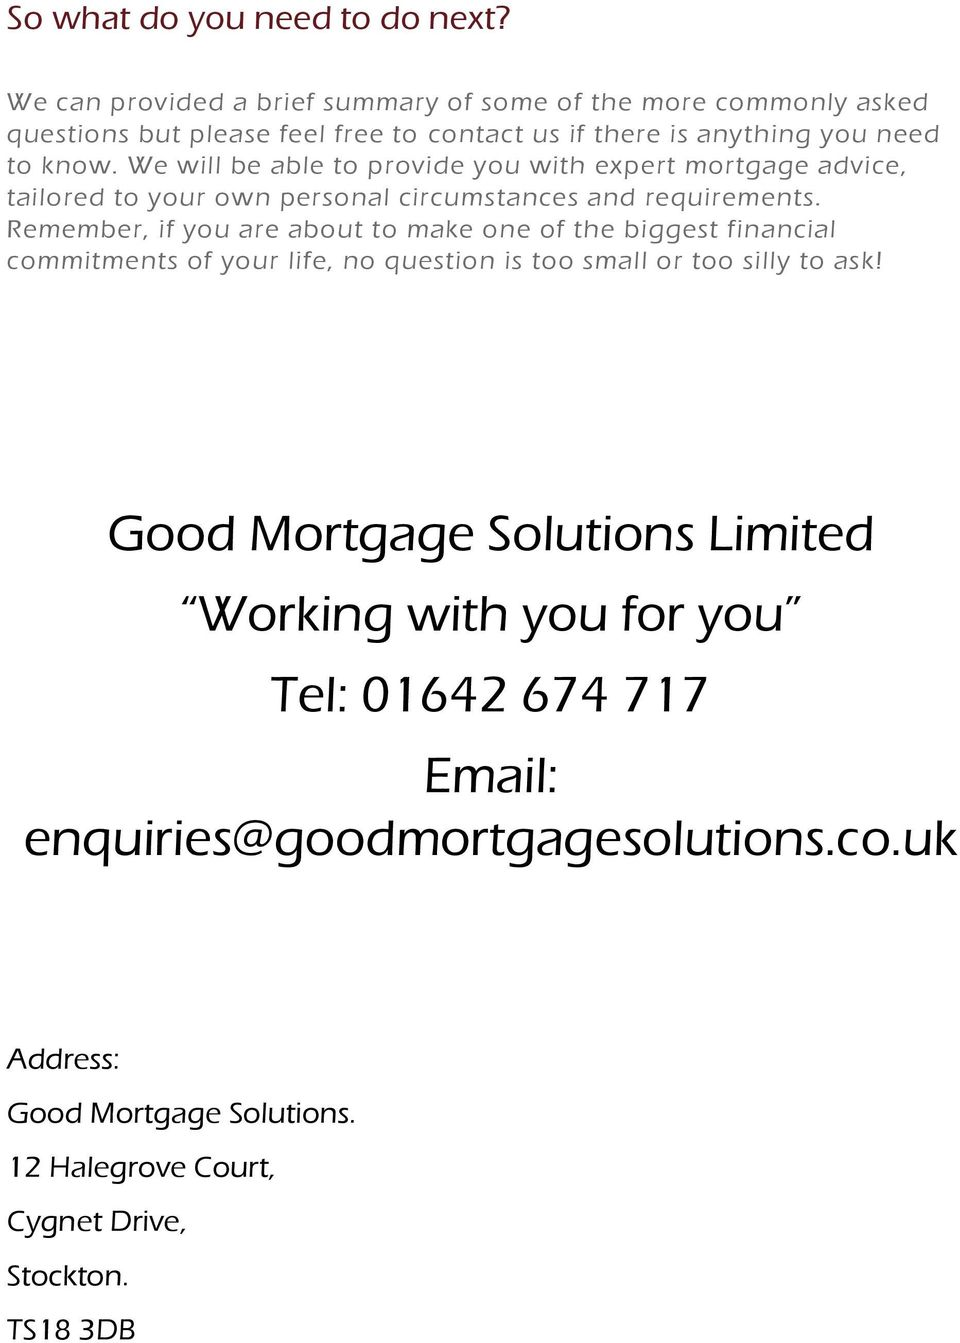 We will be able to provide you with expert mortgage advice, tailored to your own personal circumstances and requirements.